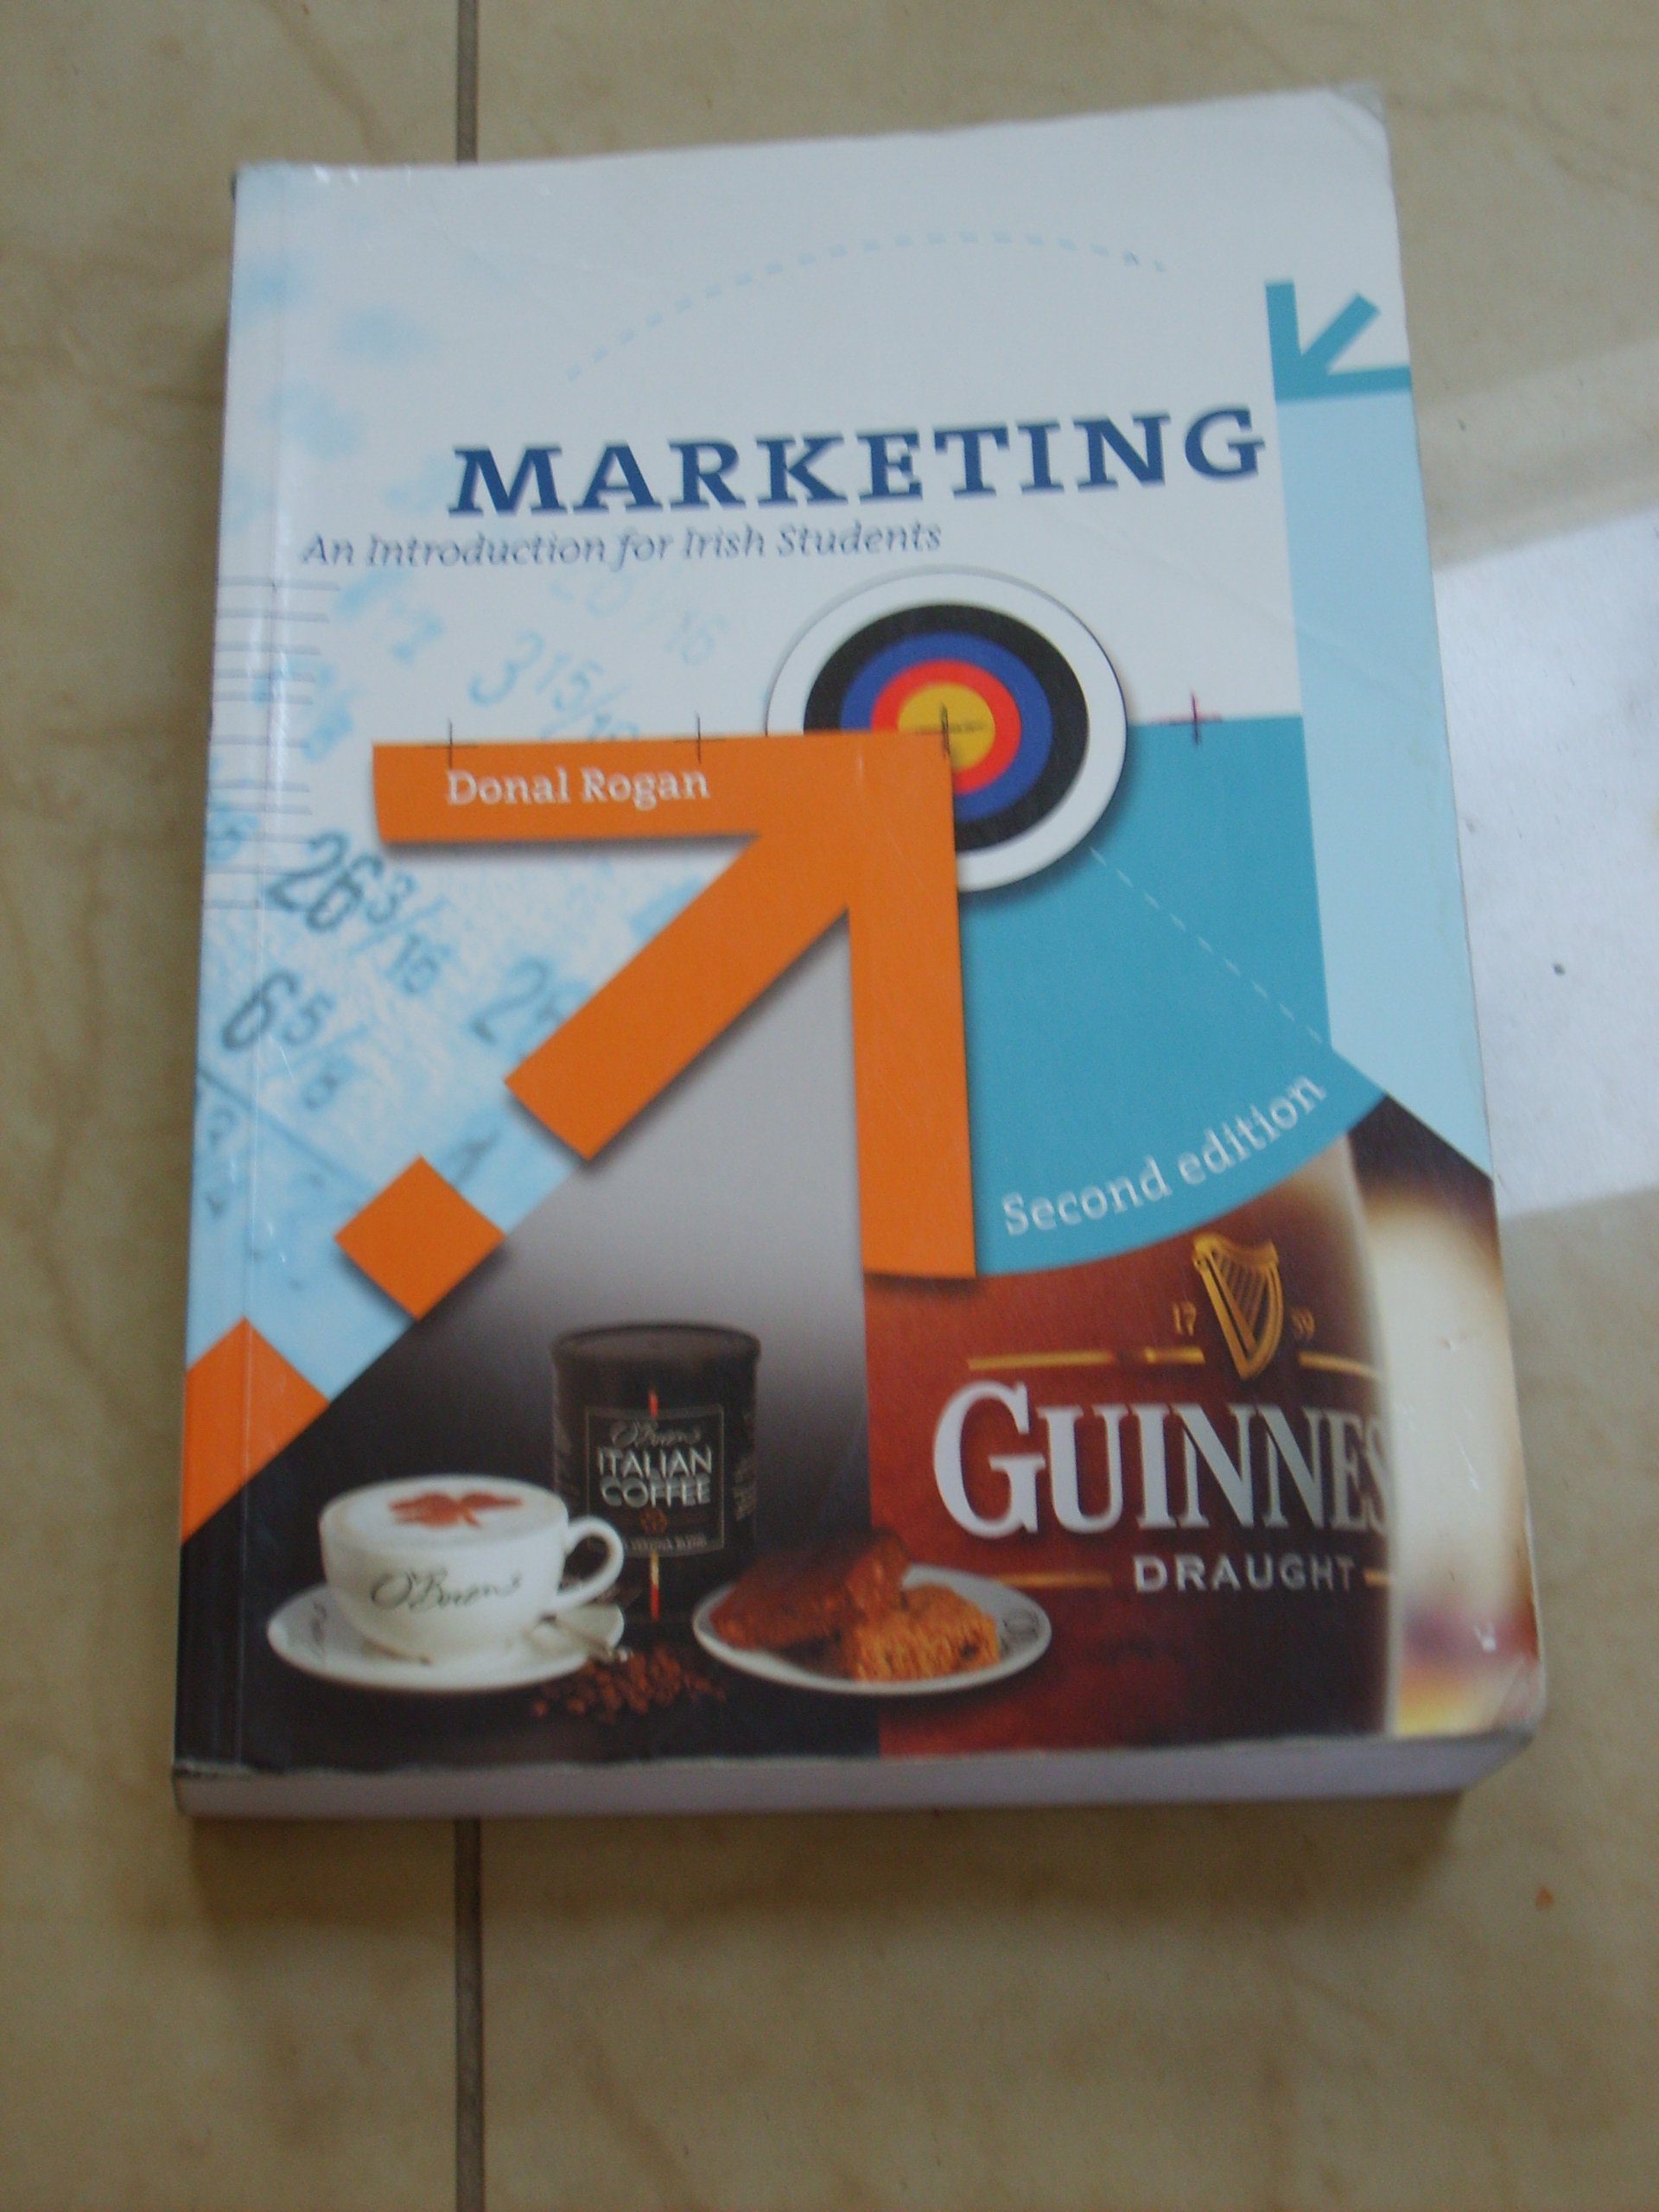 FOR SALE: Marketing An Introduction for Irish Students (2nd Edition)